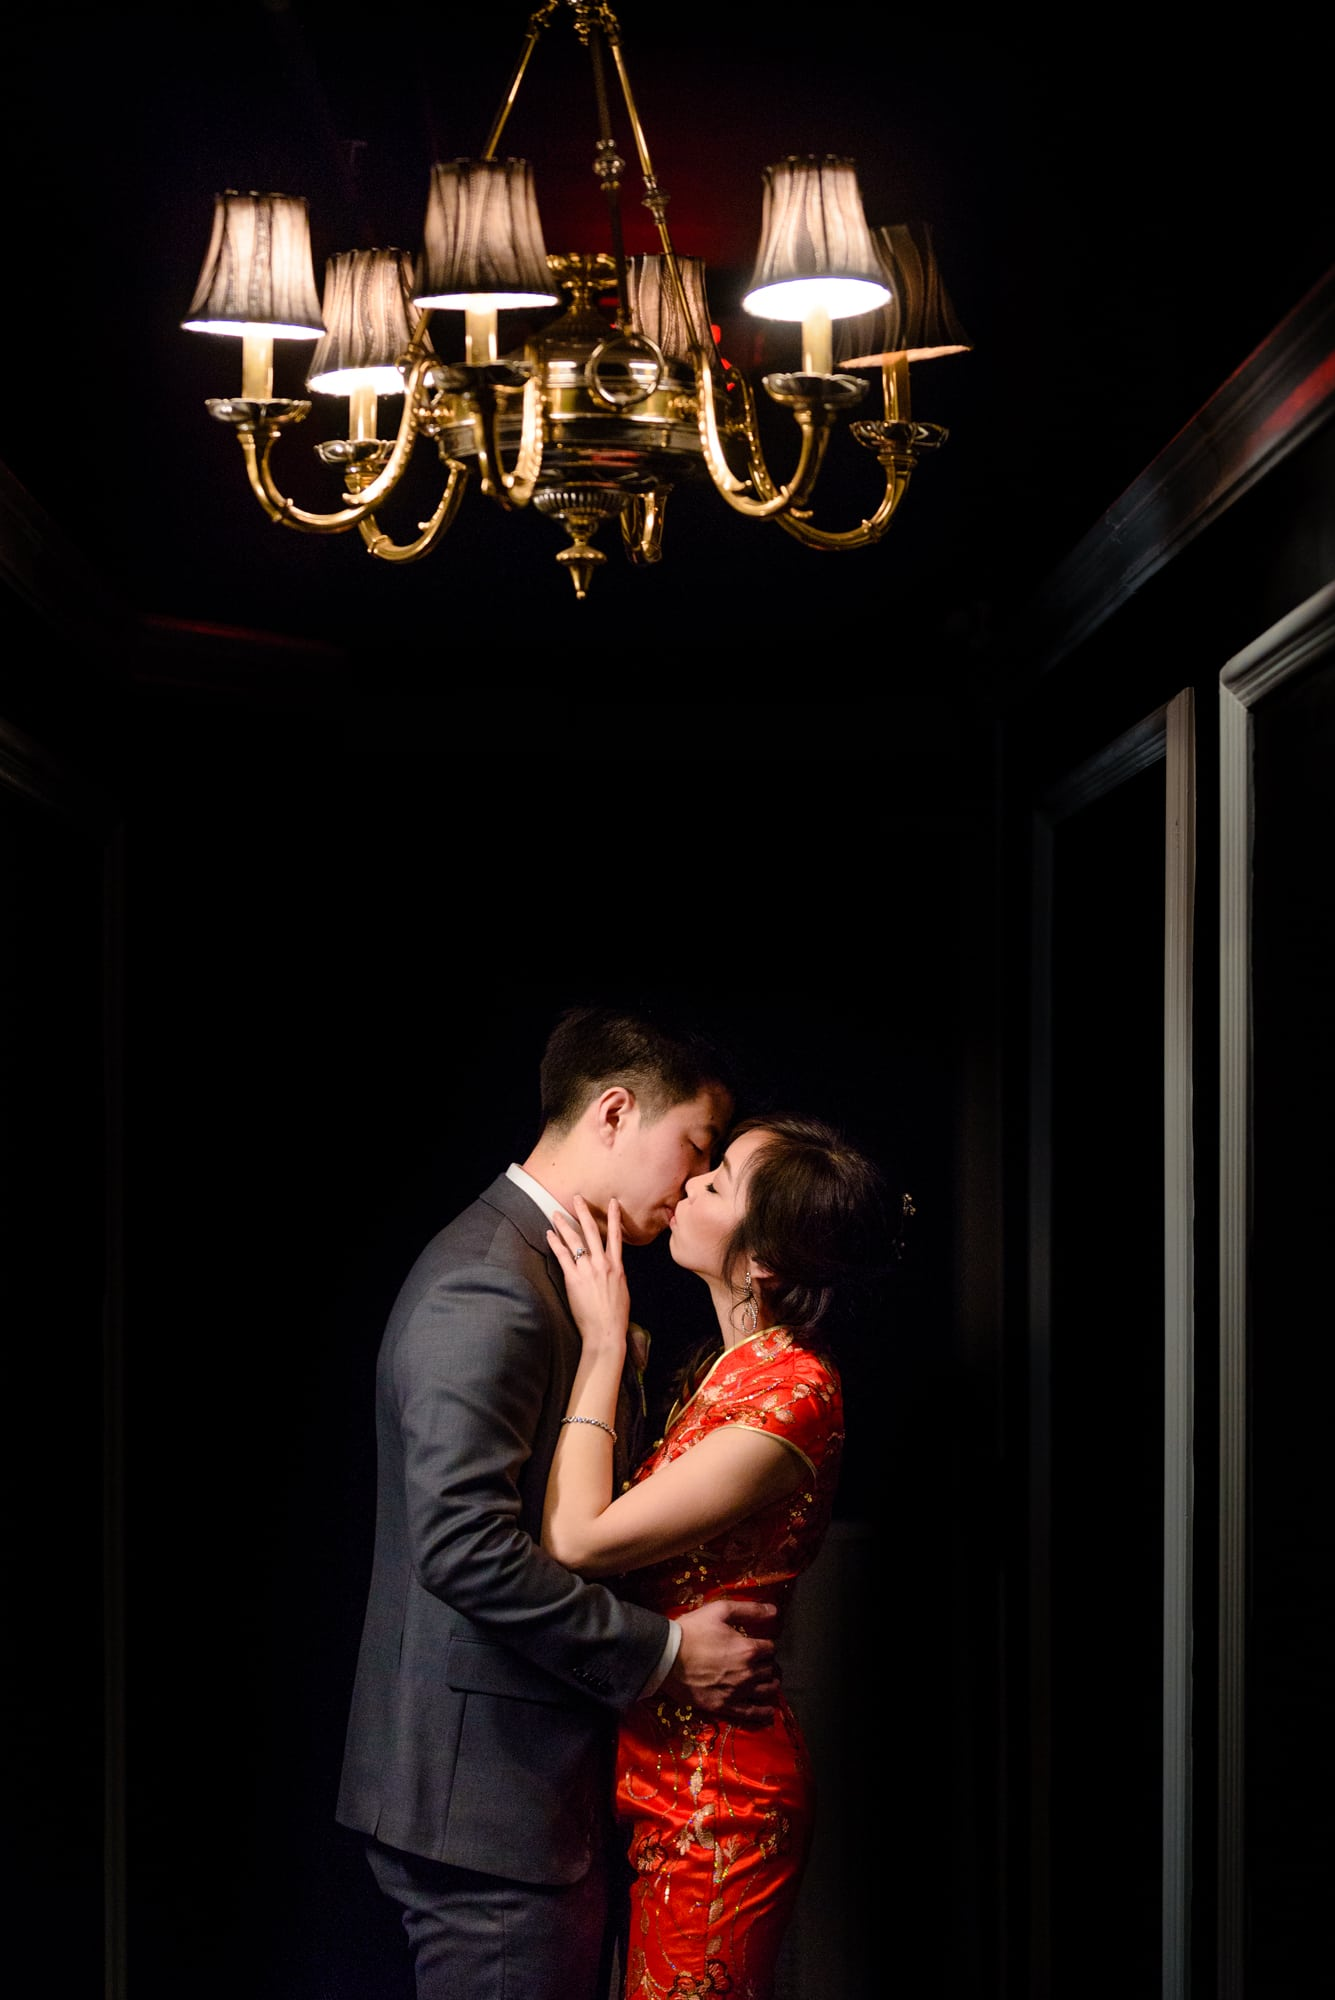 Bride and groom romantic kiss under light